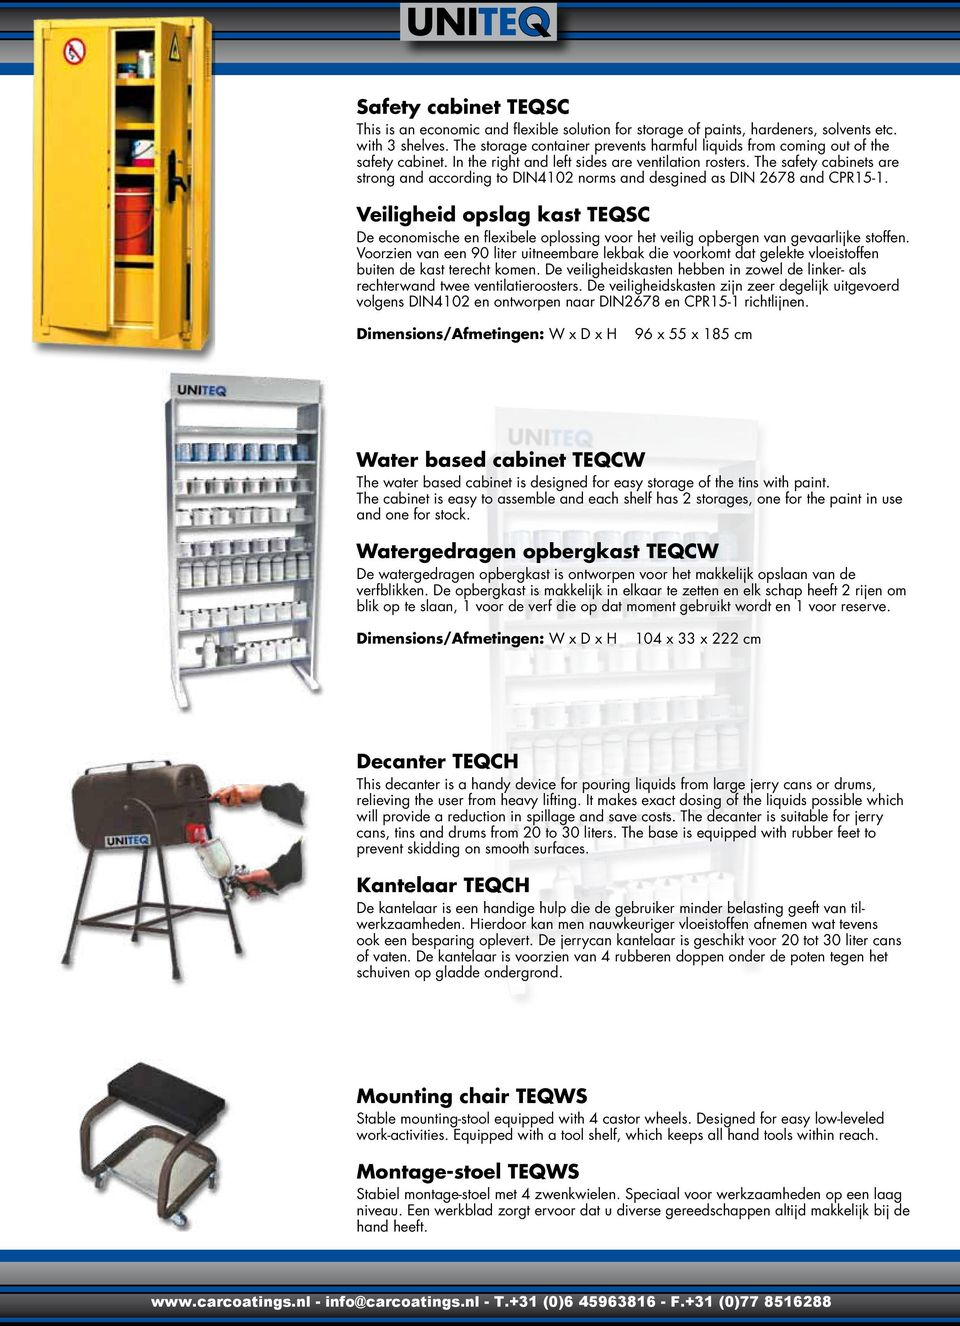 The safety cabinets are strong and according to DIN4102 norms and desgined as DIN 2678 and CPR15-1.